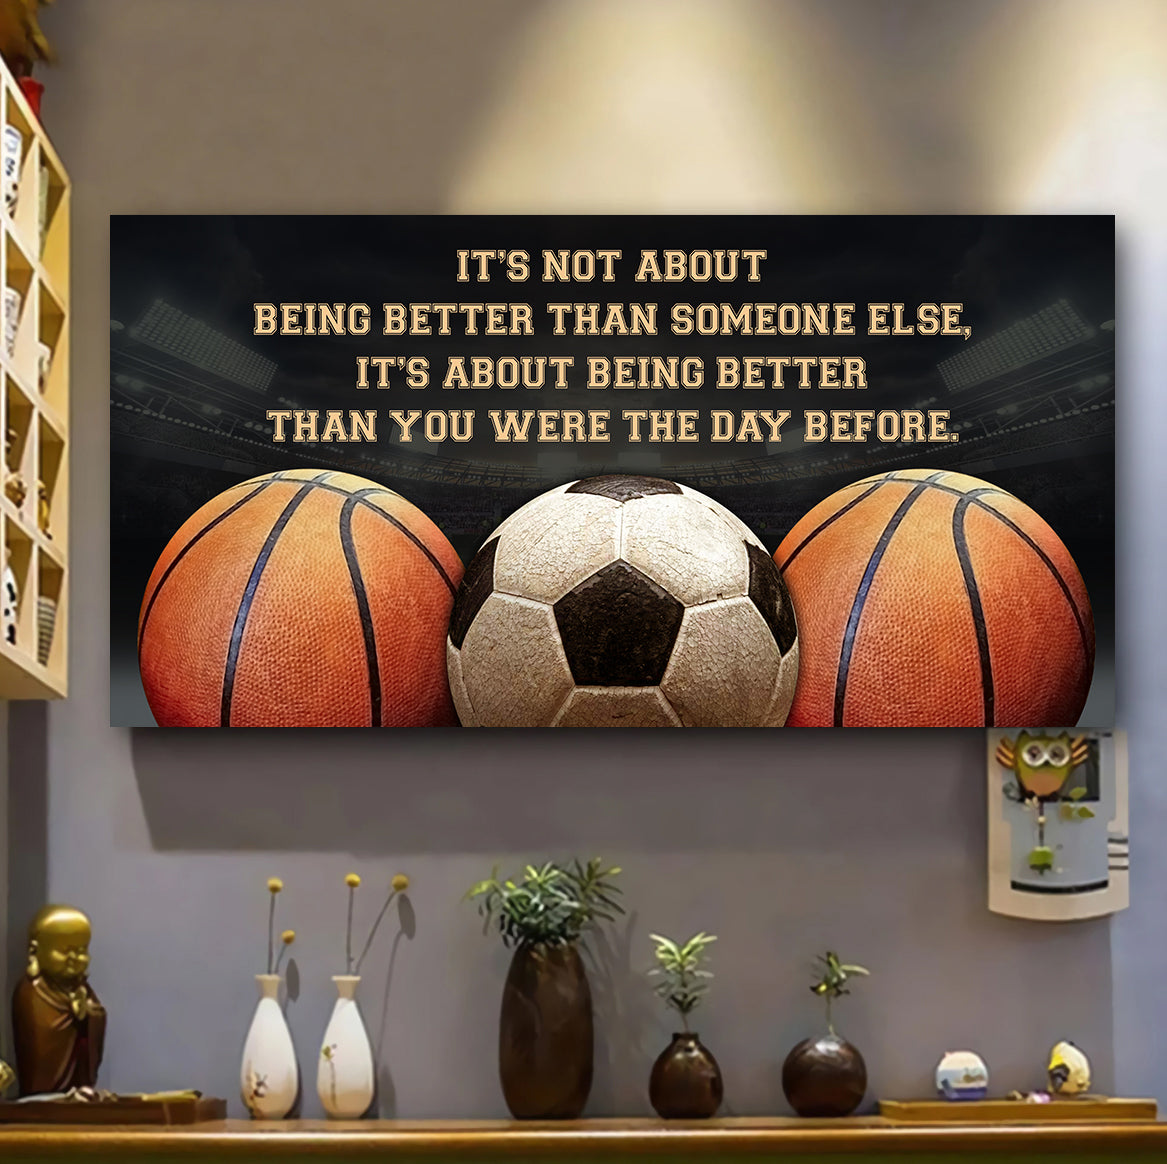 (LP342) Customizable Basketball & Soccer poster Canvas - It's not about being better than someone else- FREE SHIPPING ON ORDERS OVER $75